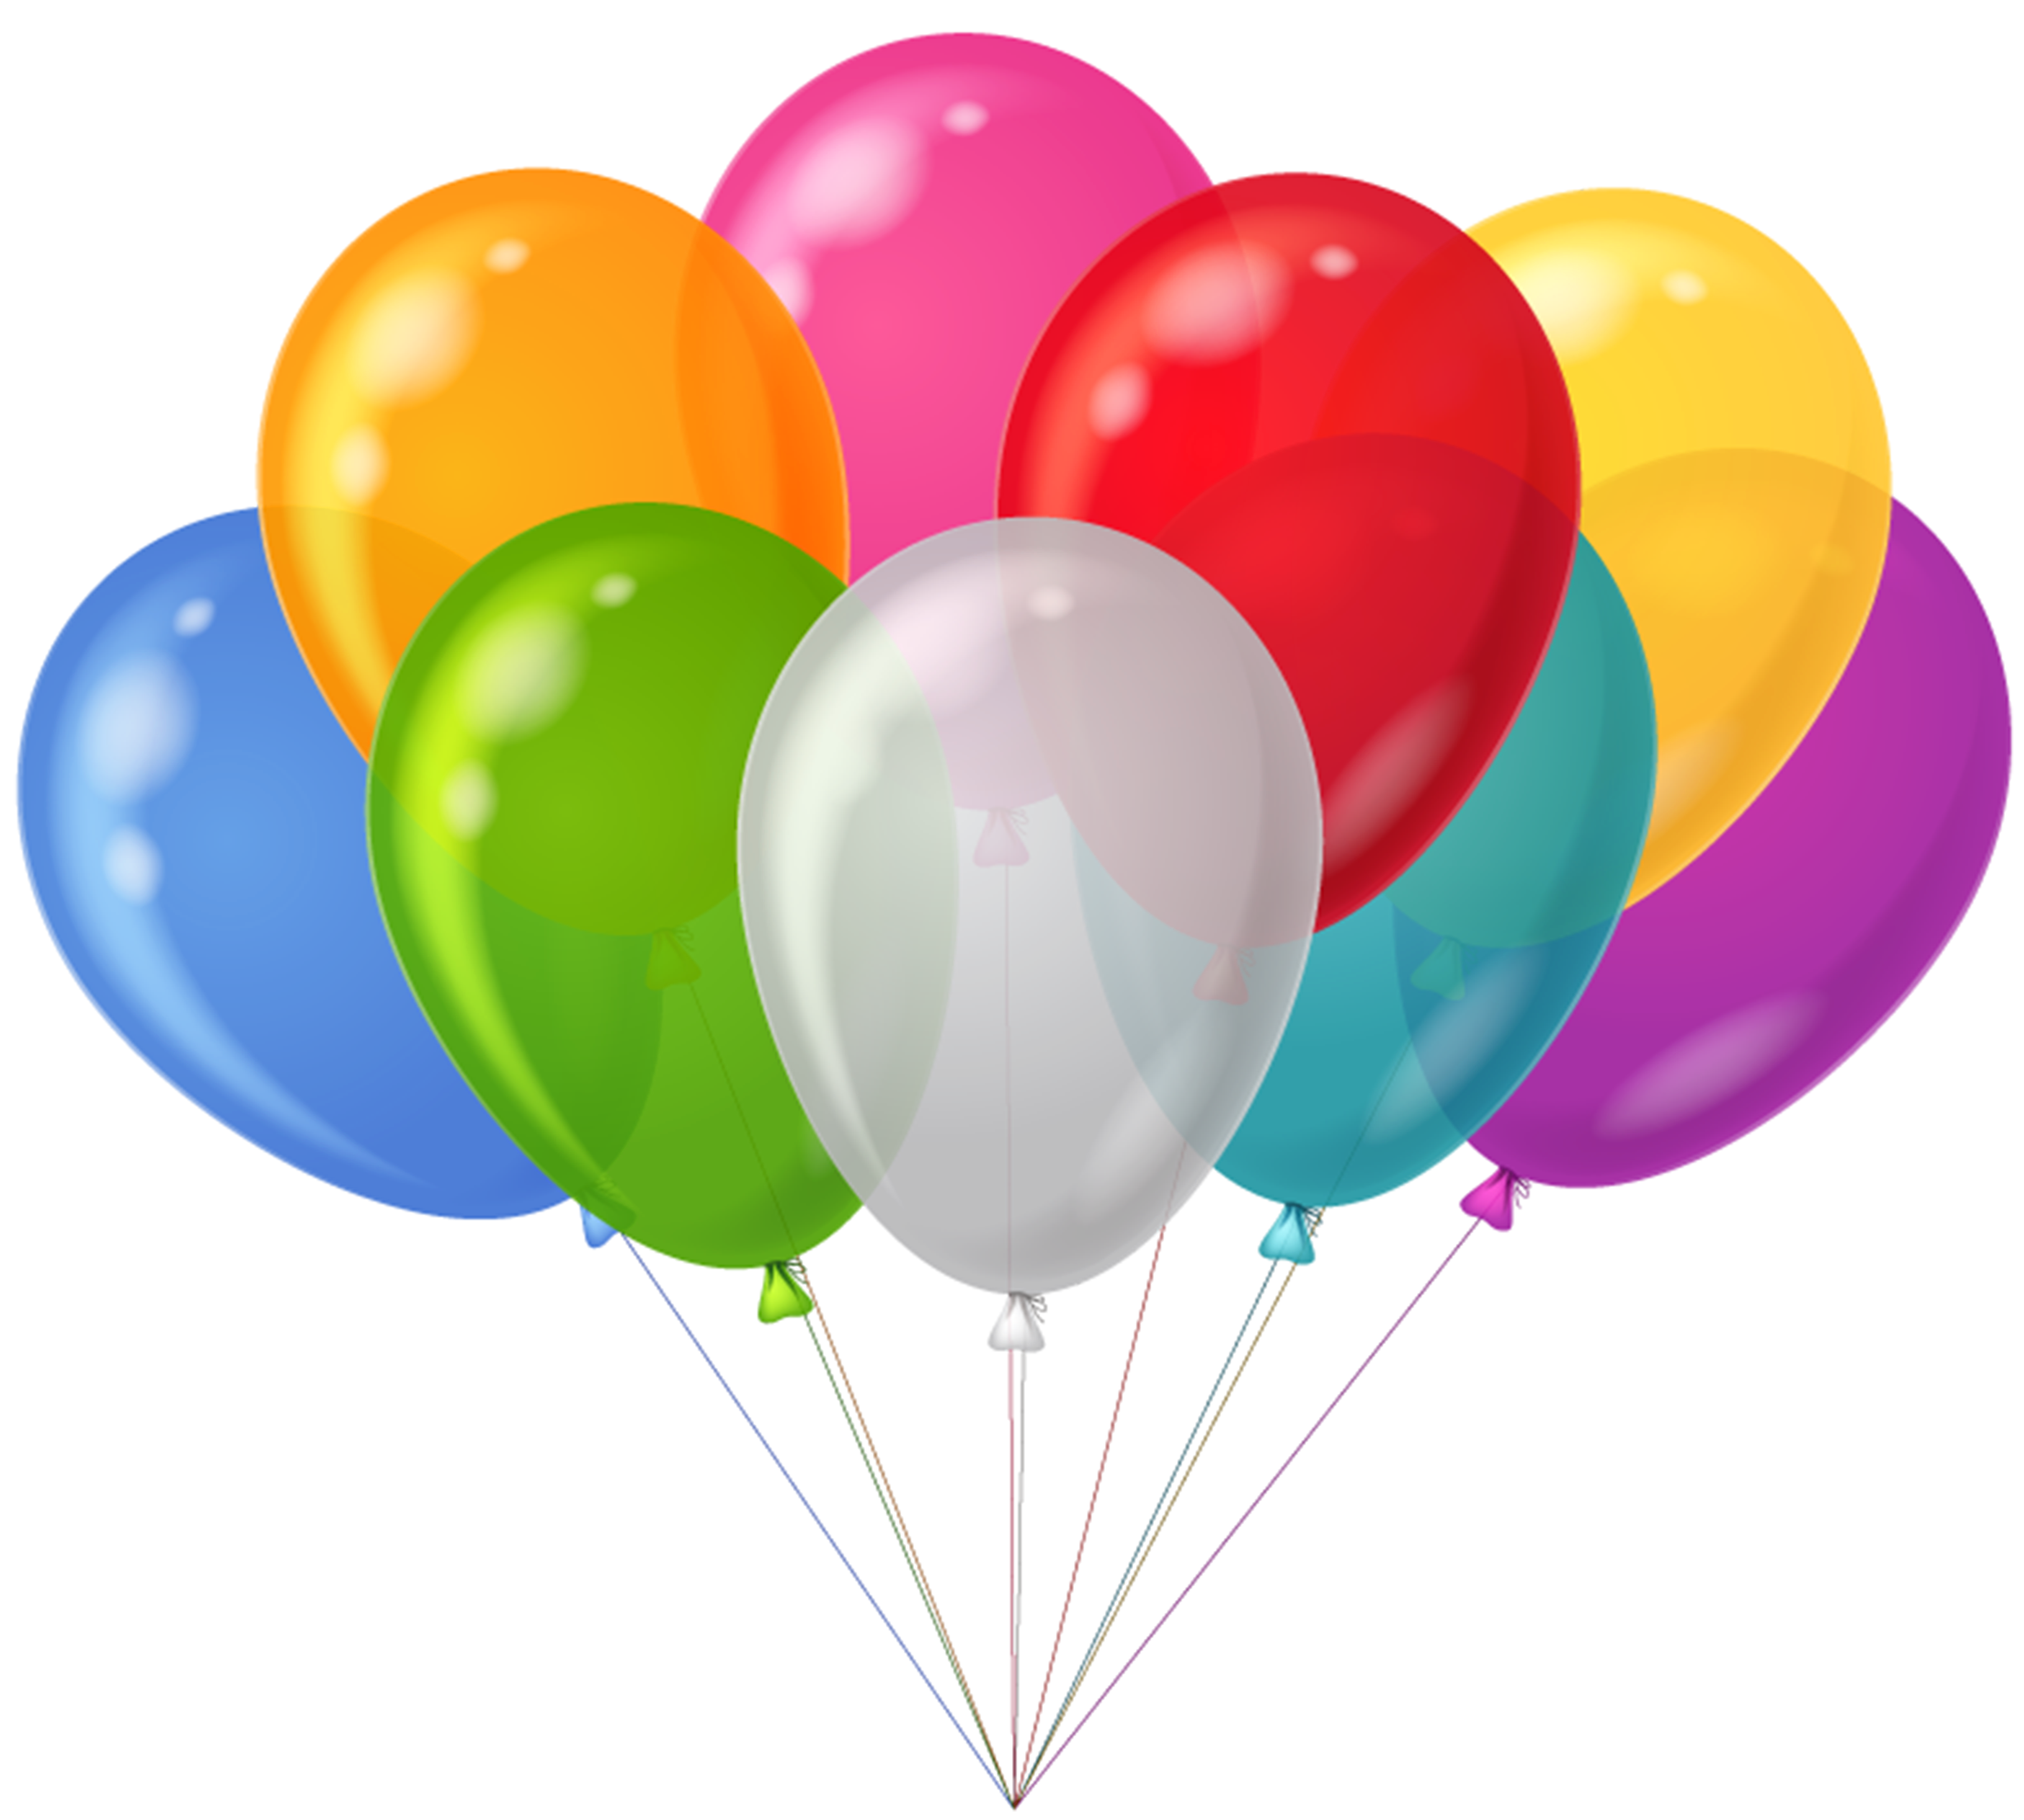 3250x2922 Bunch Transparent Colorful Balloons Clipartu200b Gallery